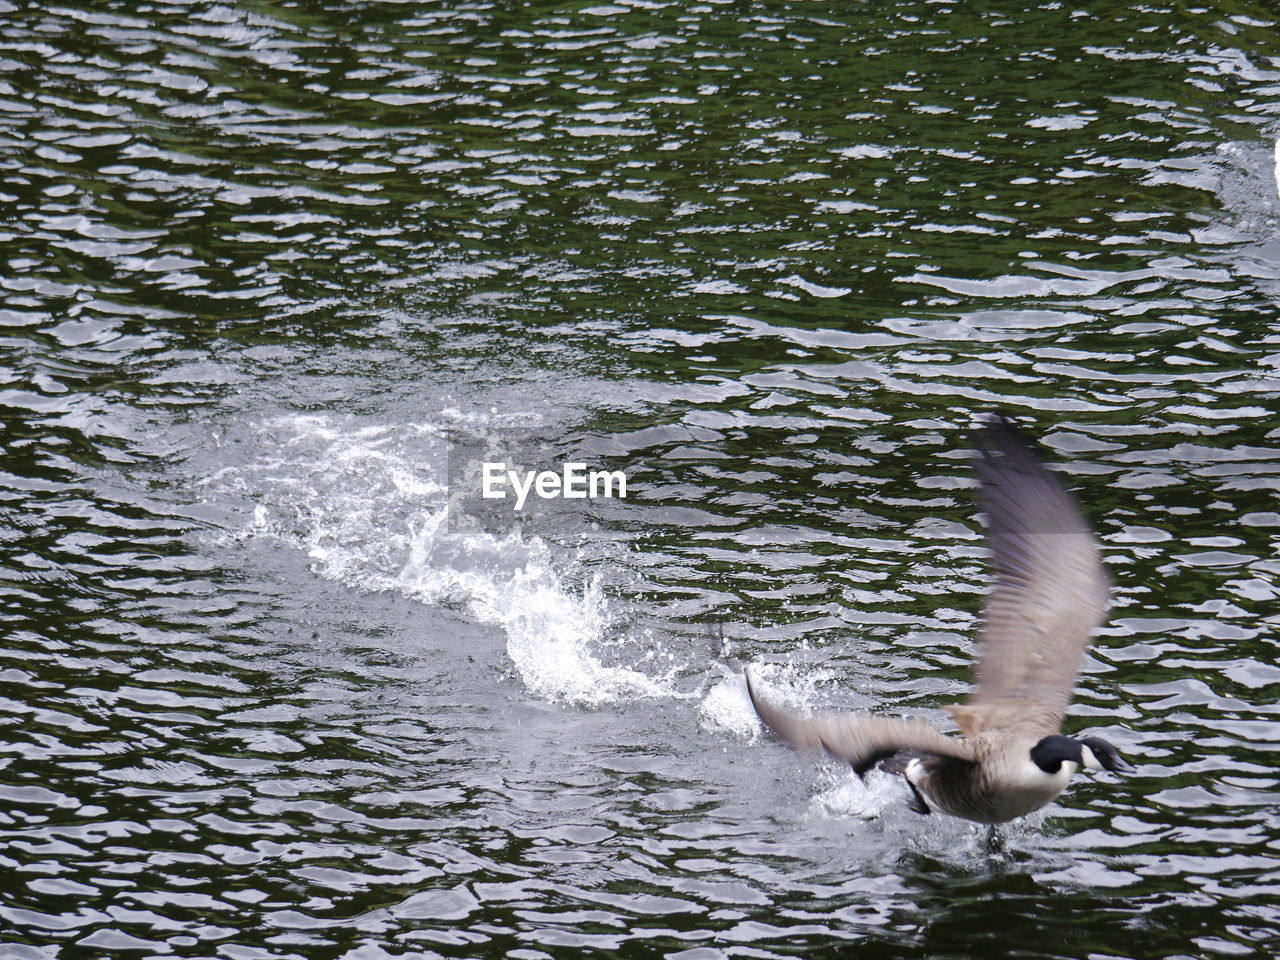 water, animals in the wild, one animal, animal themes, bird, spread wings, nature, lake, day, animal wildlife, no people, outdoors, swimming, swan